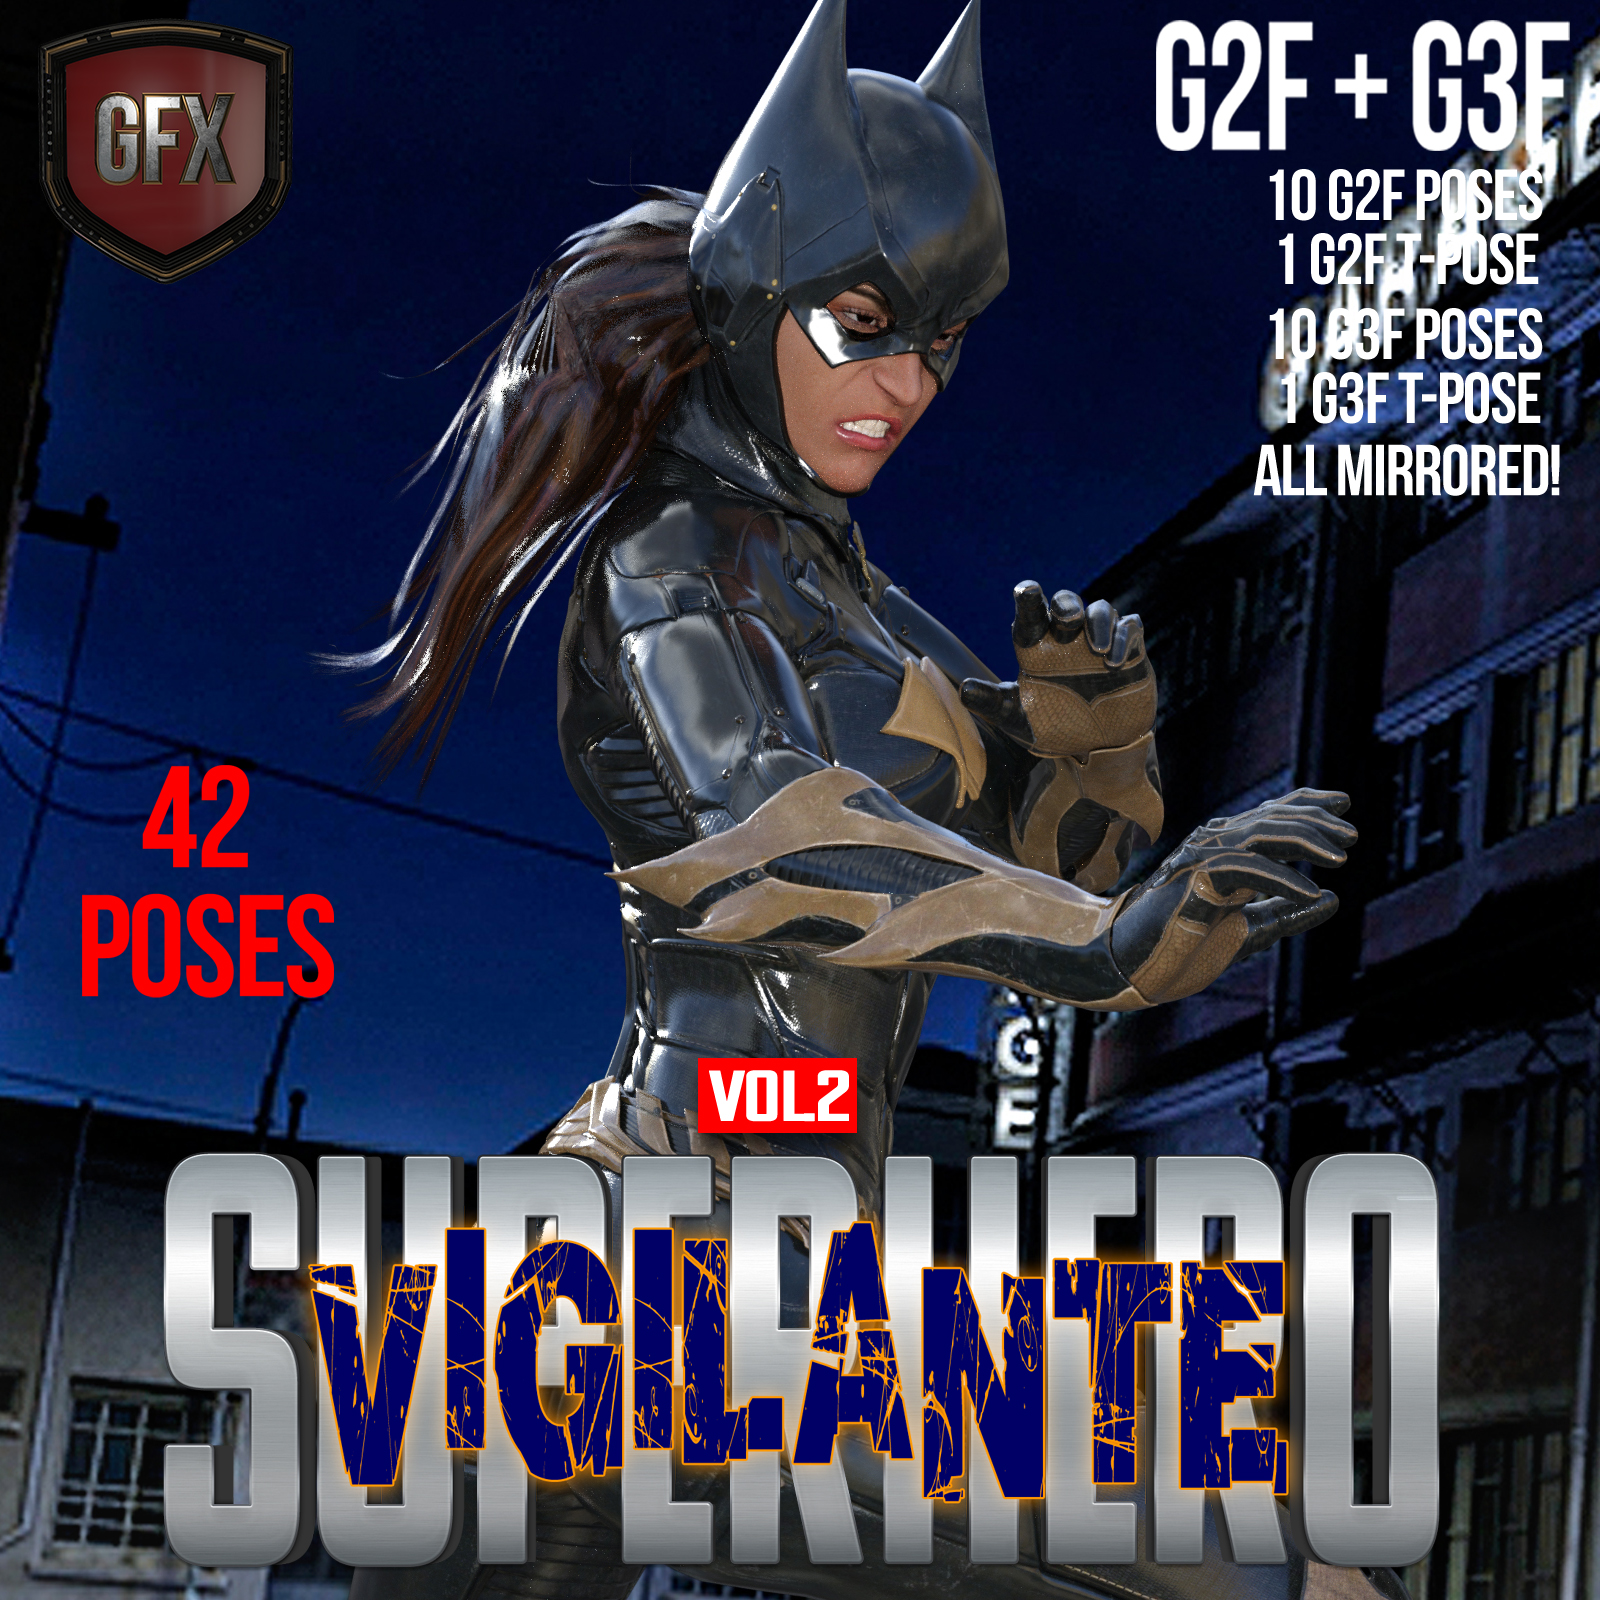 SuperHero Vigilante for G2F and G3F Volume 2